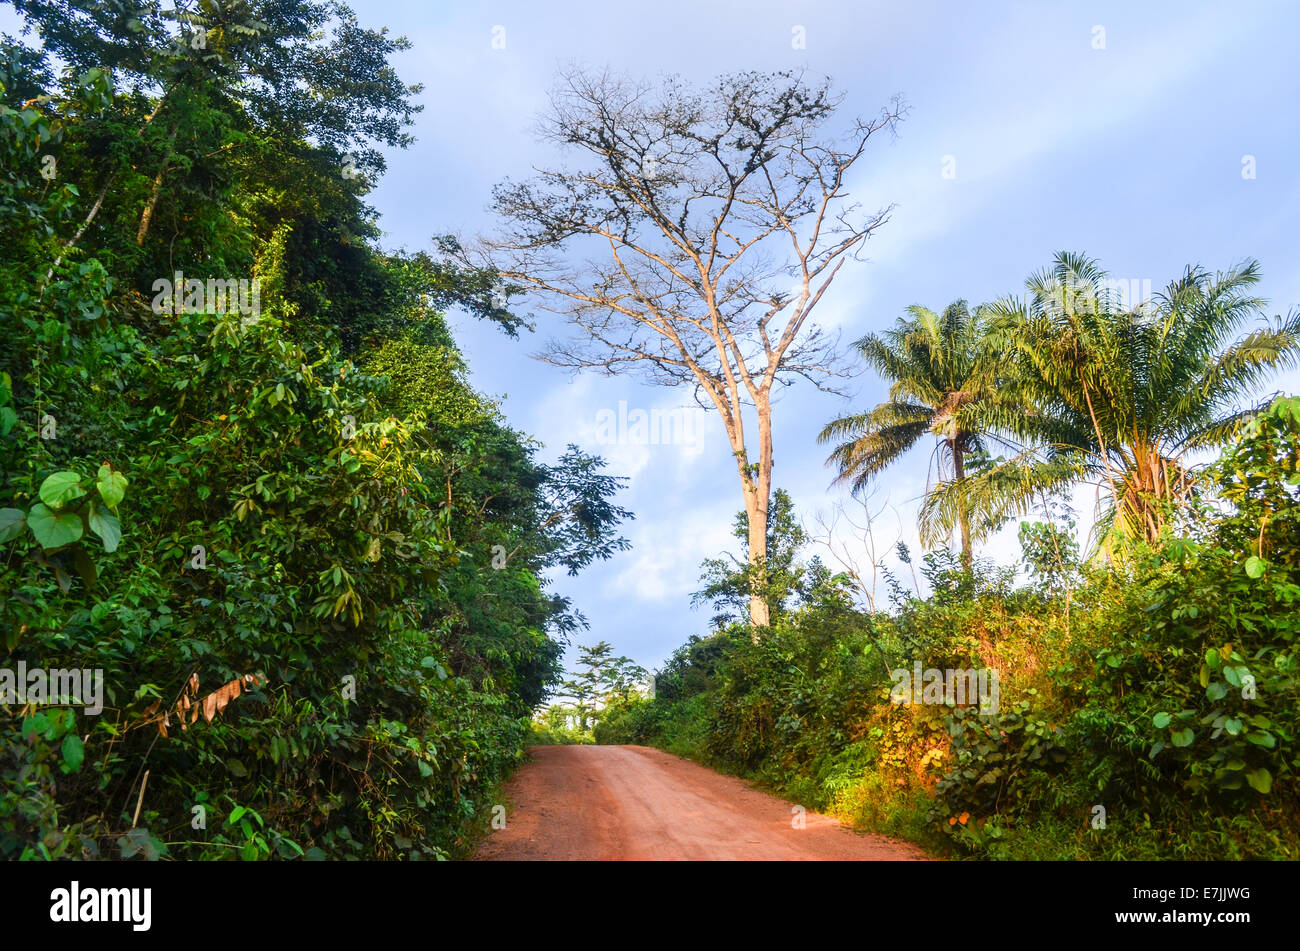 A dirt road of mud red earth in the countryside of Nimba County, Liberia, Africa - Stock Image